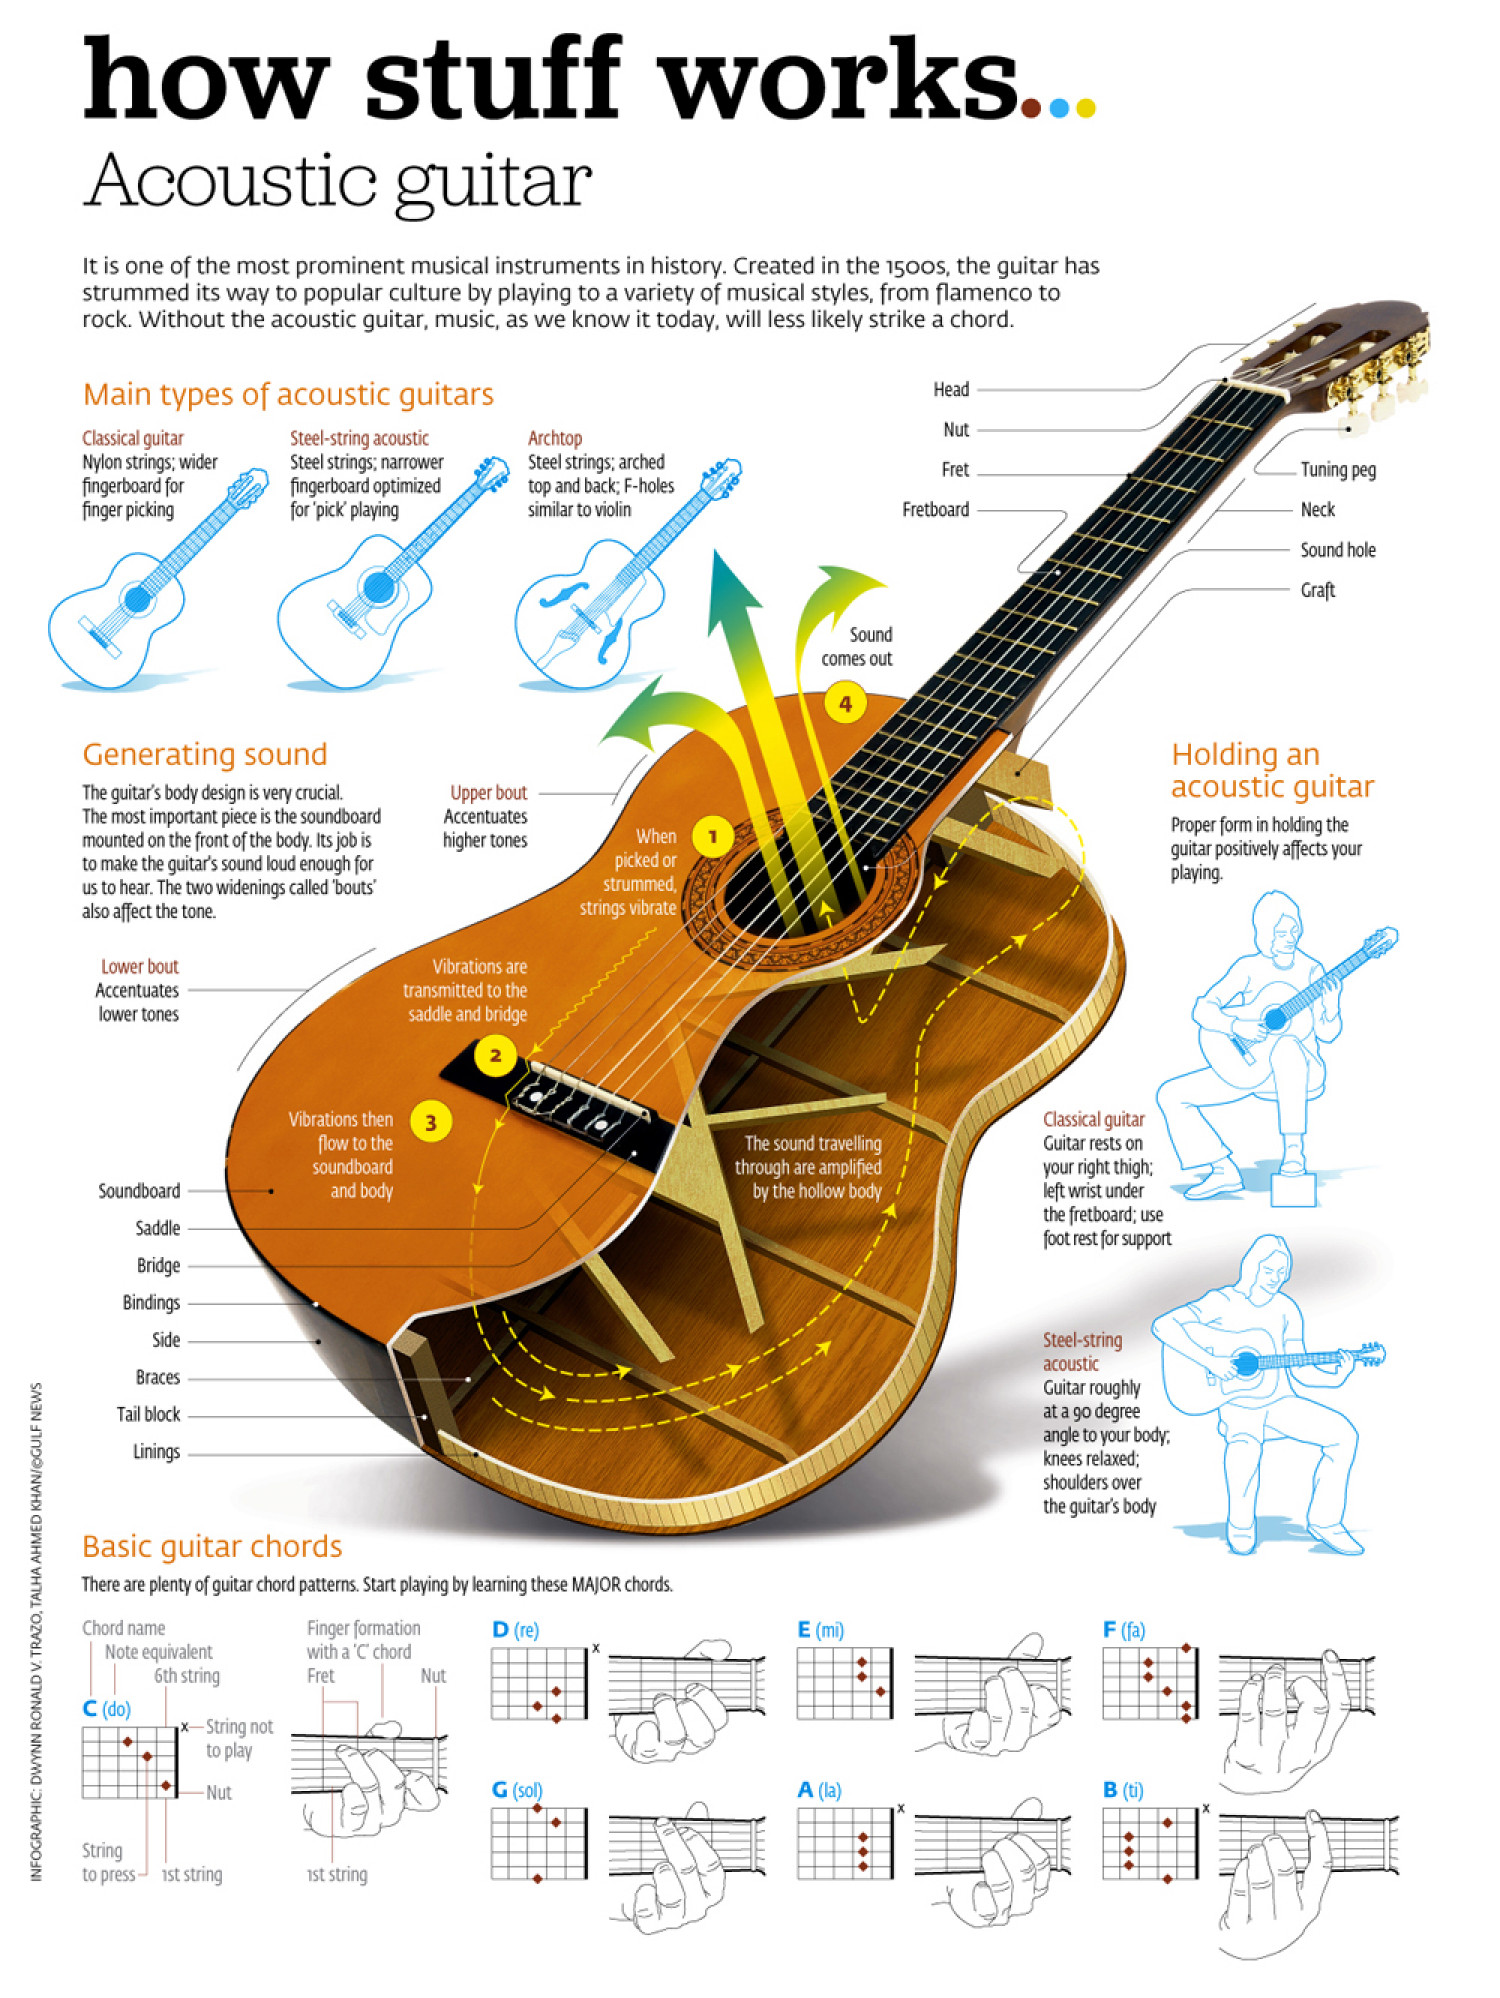 acoustic guitar infographic